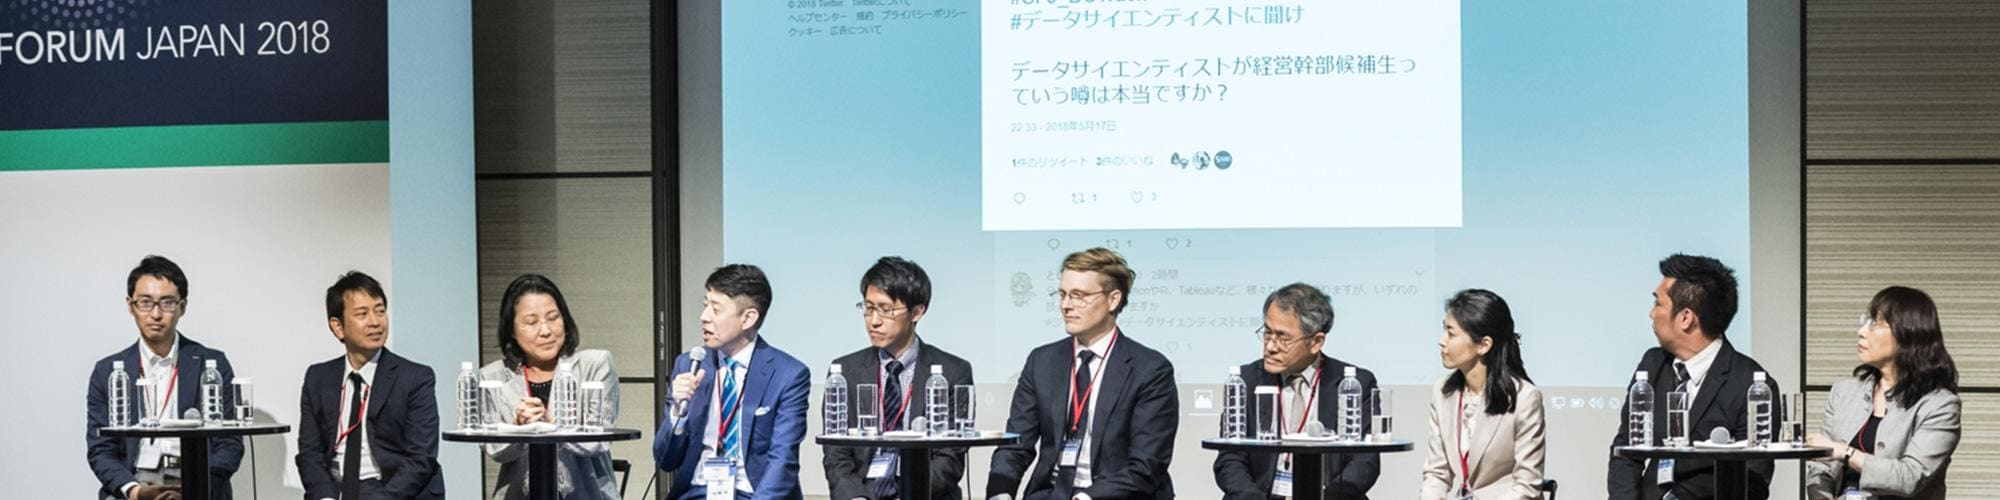 Data Scientists in SAS Forum Japan 2018